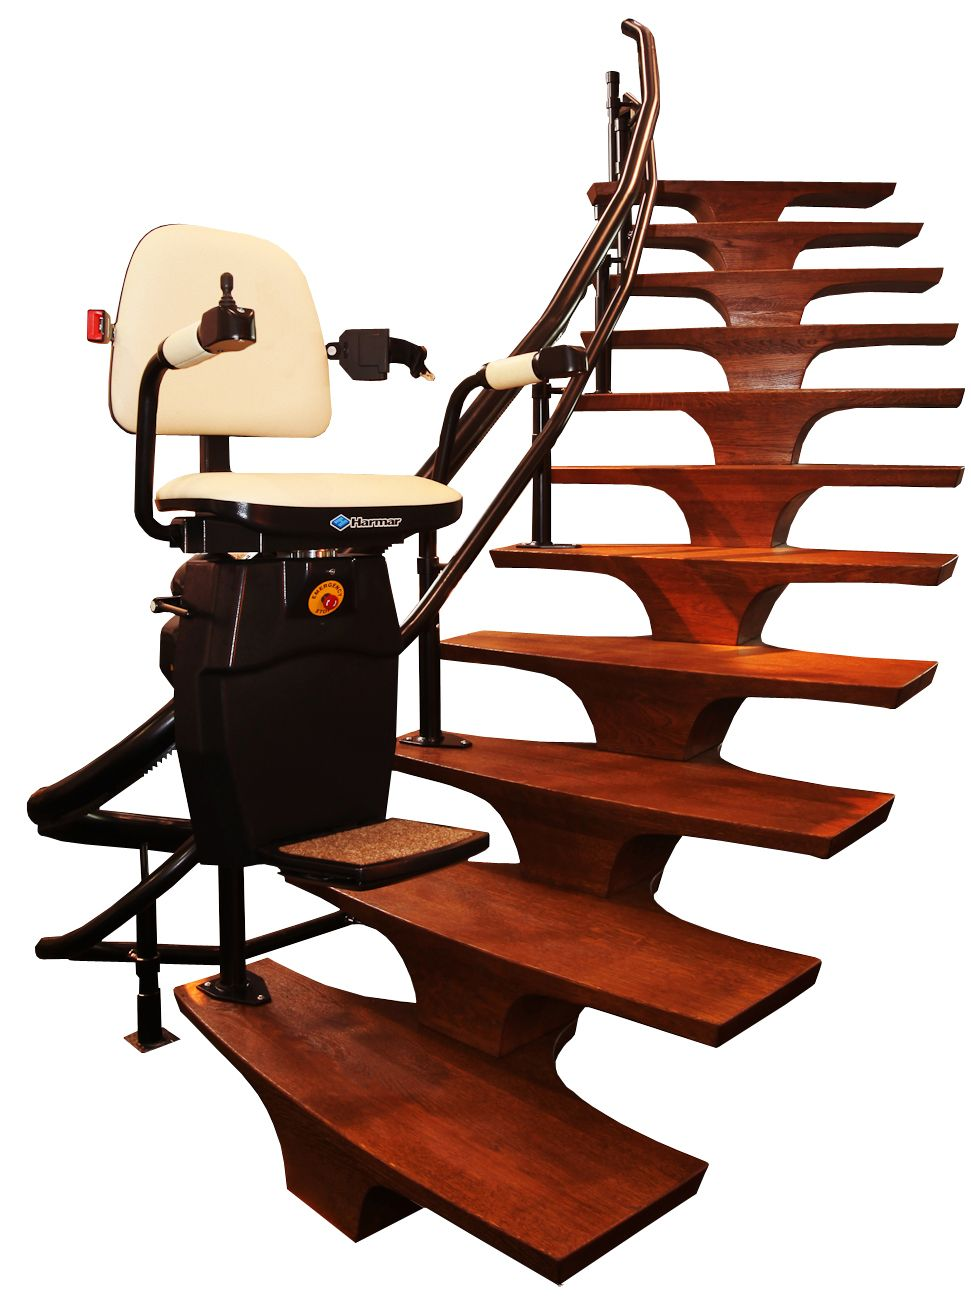 harmar stair lift | company's i've worked for products | pinterest